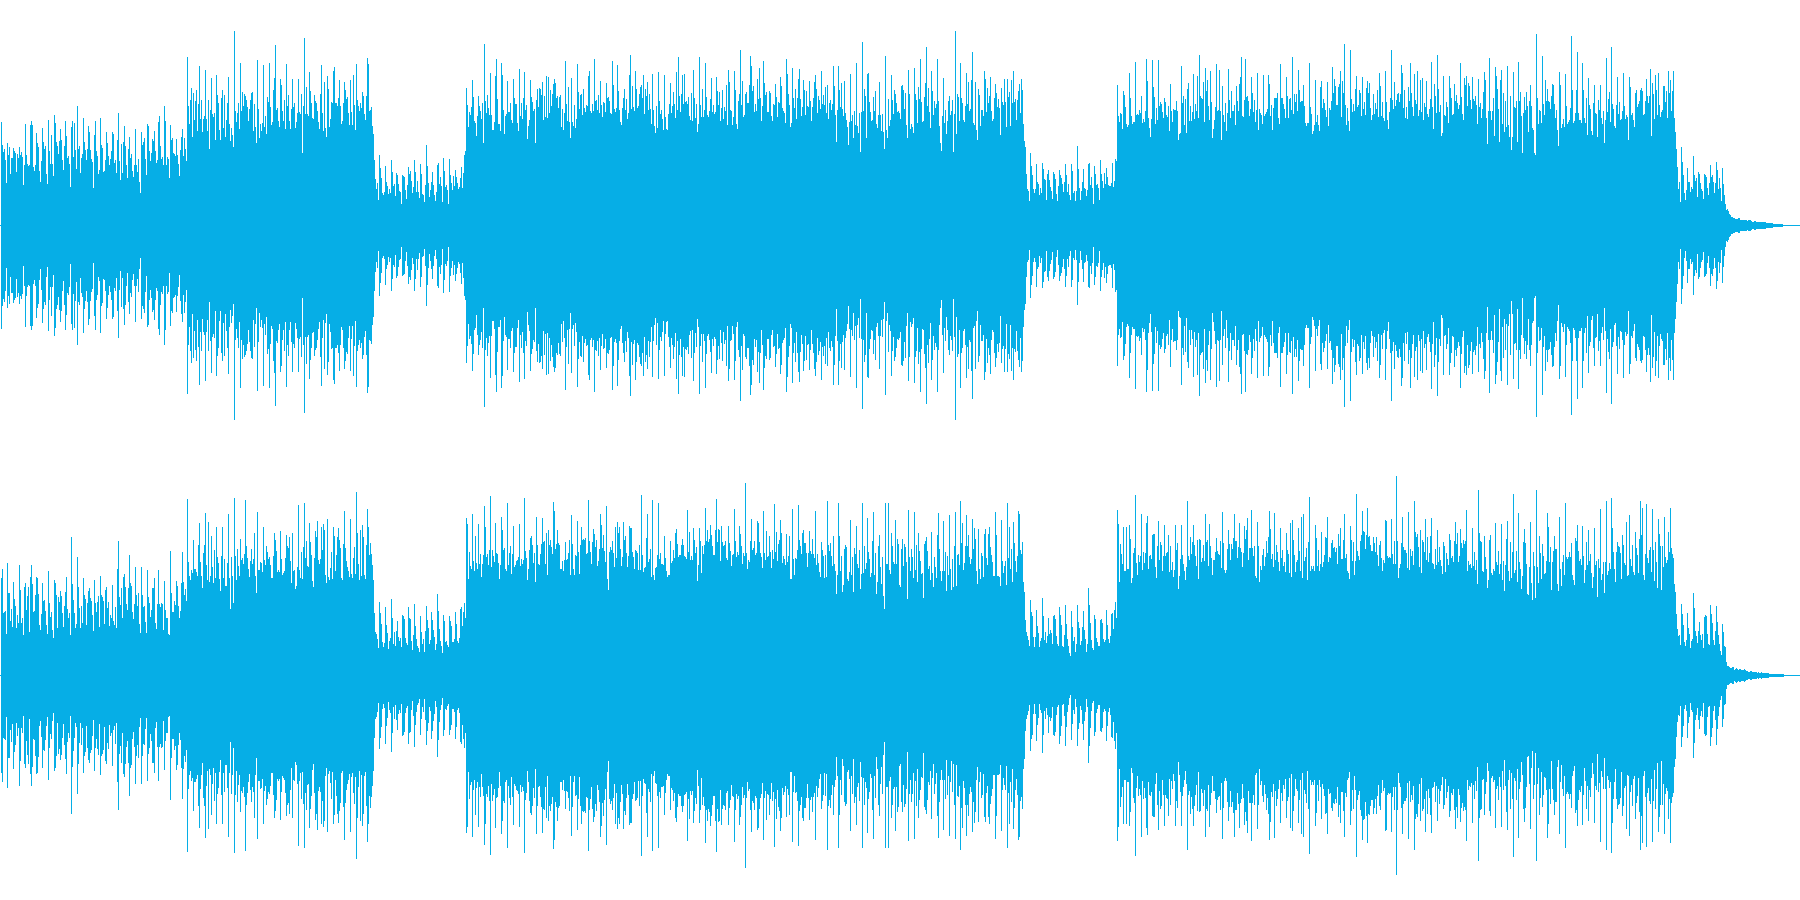 Live violin full of hope and happiness's reproduced waveform